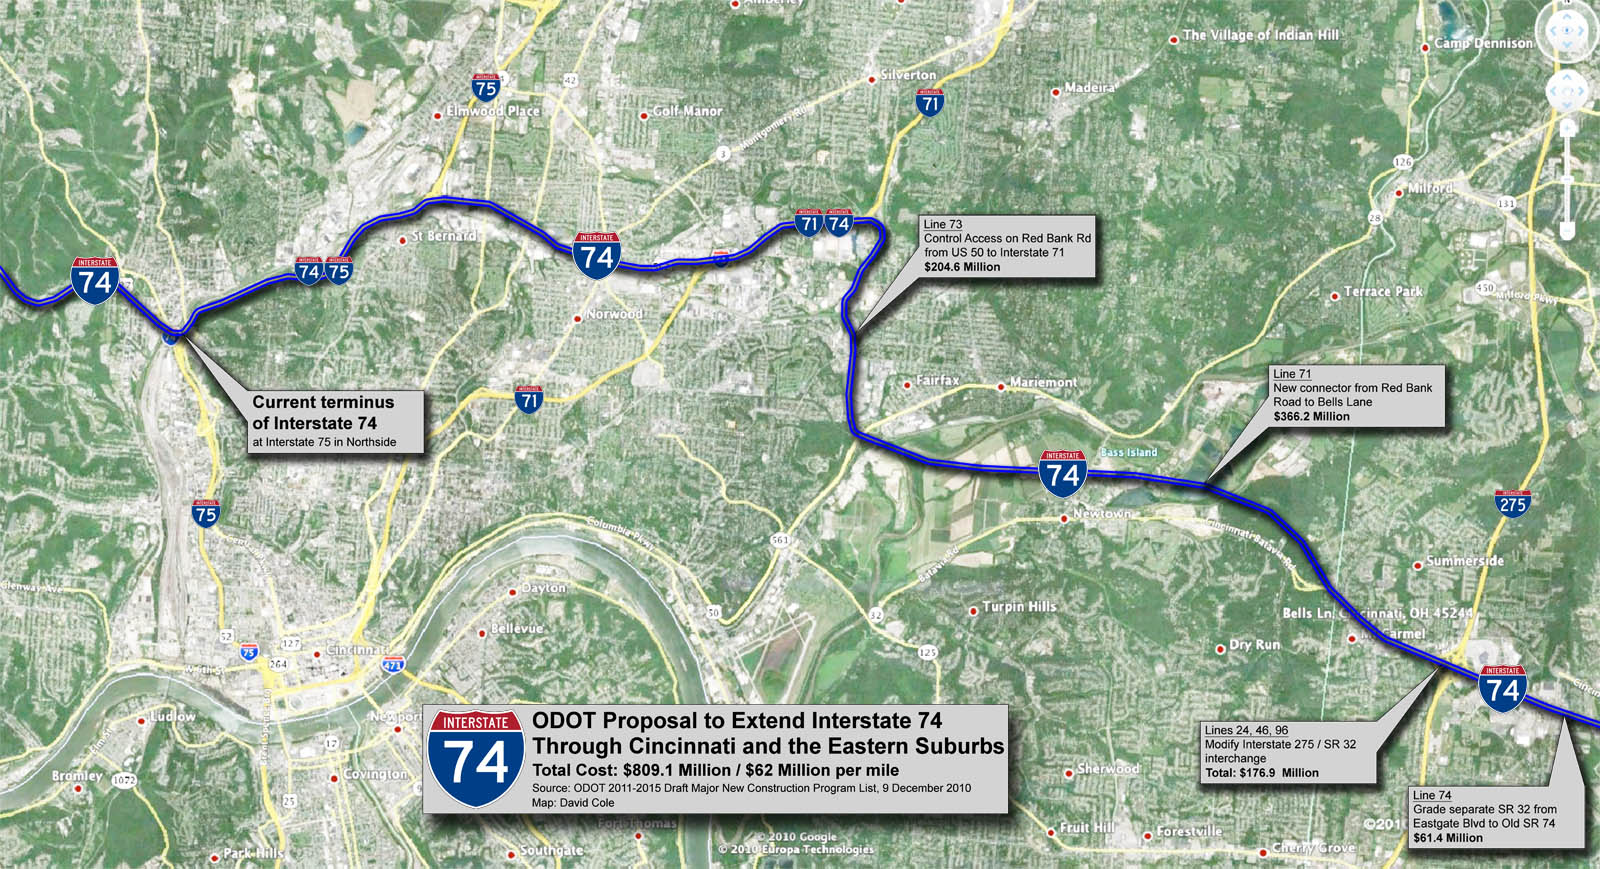 809M identified for extension of I 74 through